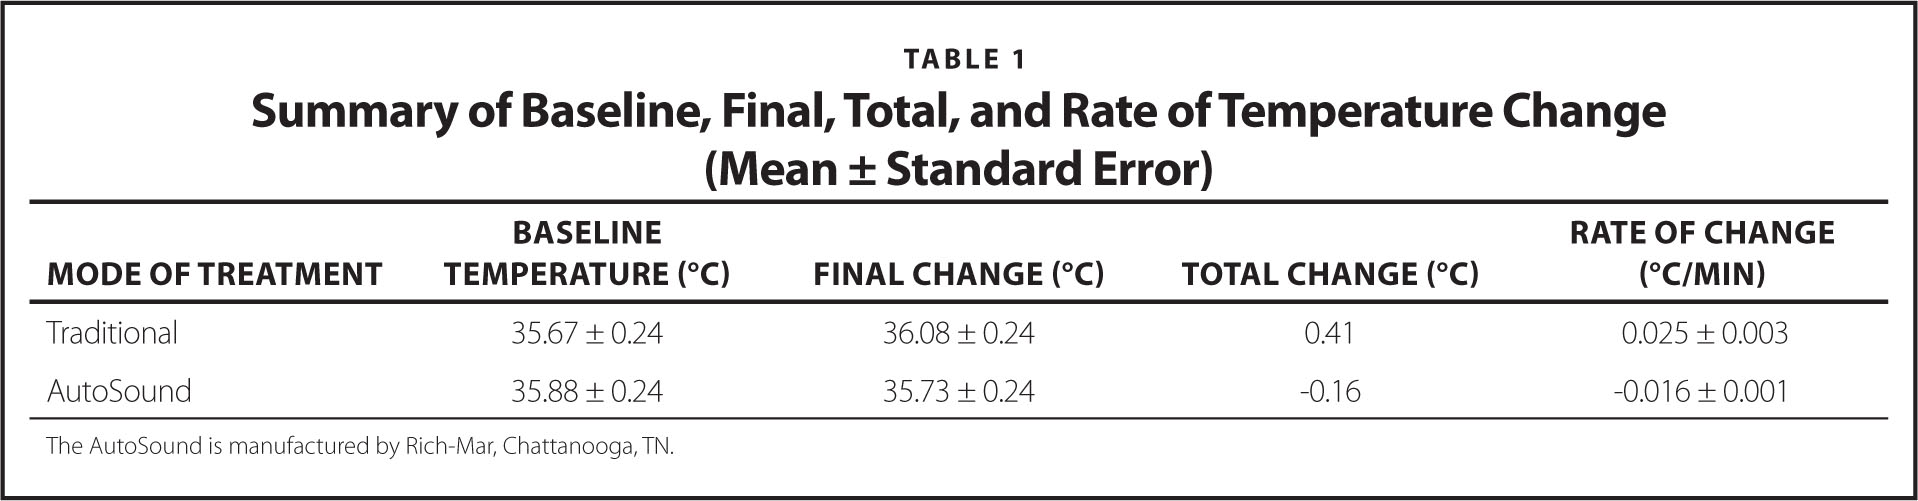 Summary of Baseline, Final, Total, and Rate of Temperature Change (Mean ± Standard Error)